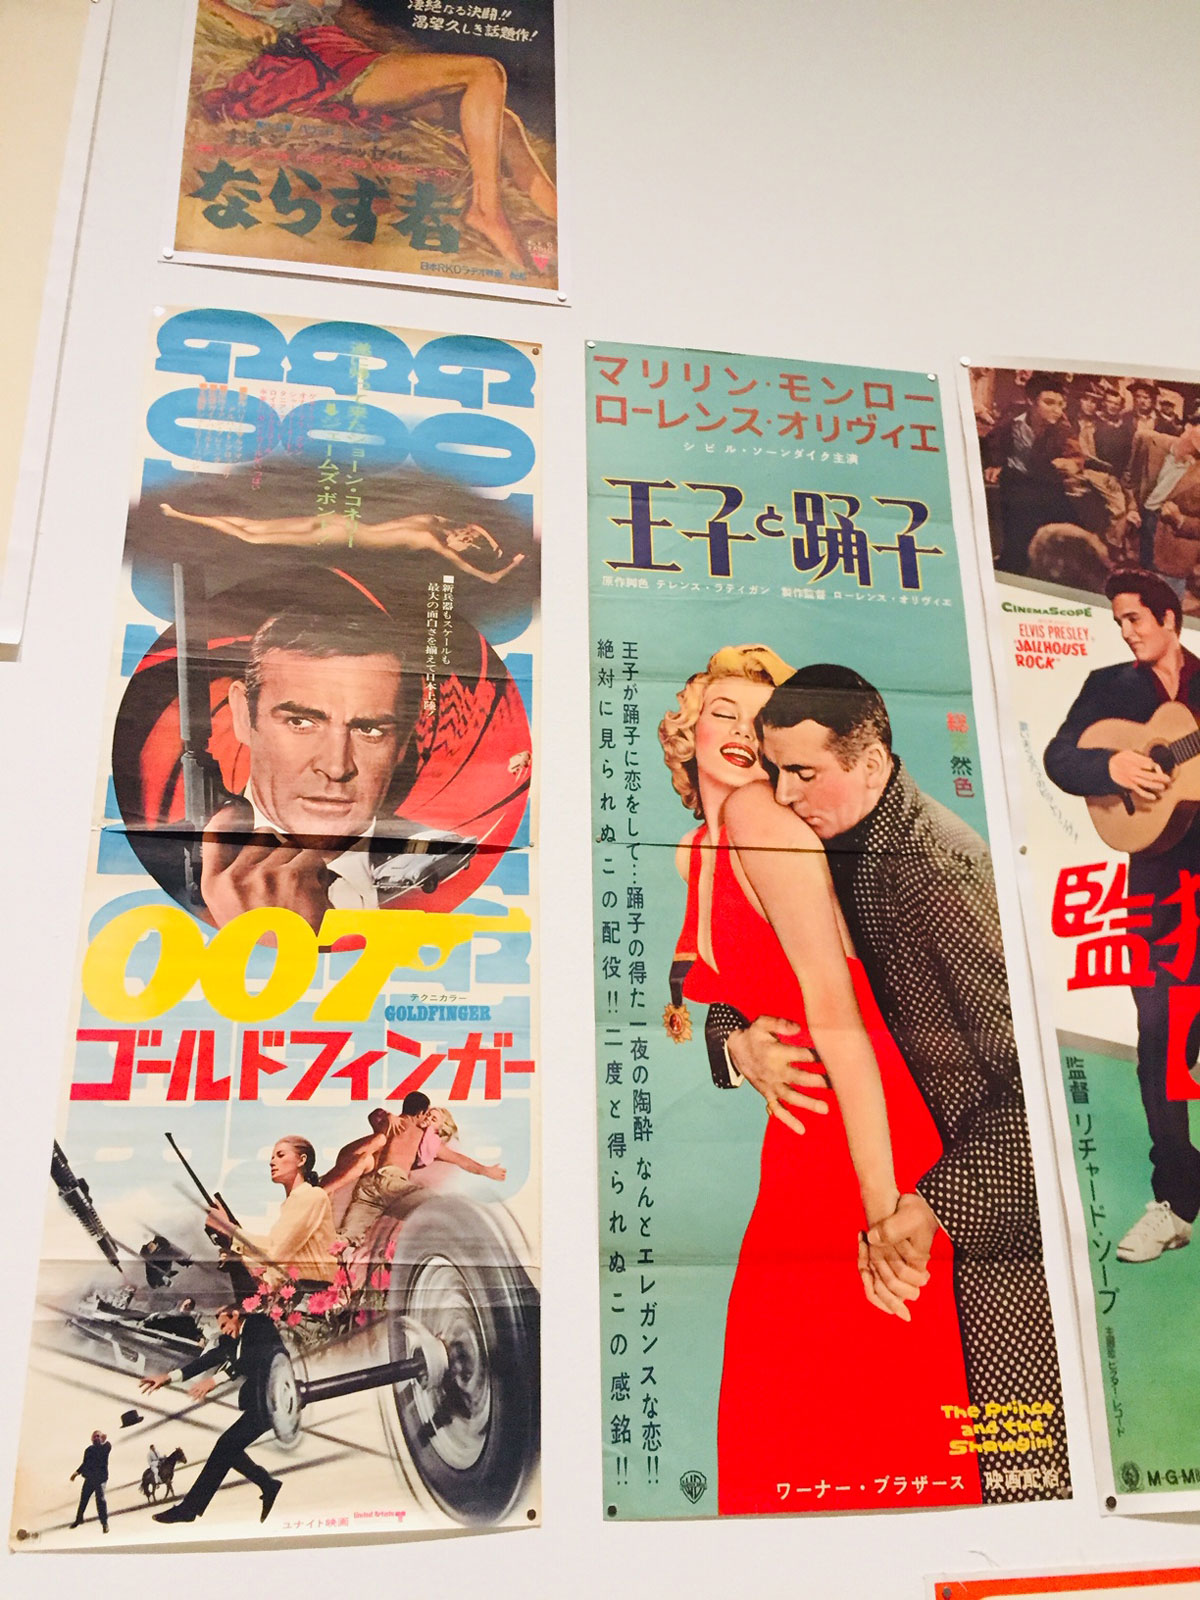 Coming Soon: Largest Museum Exhibition of Classic Movie Posters